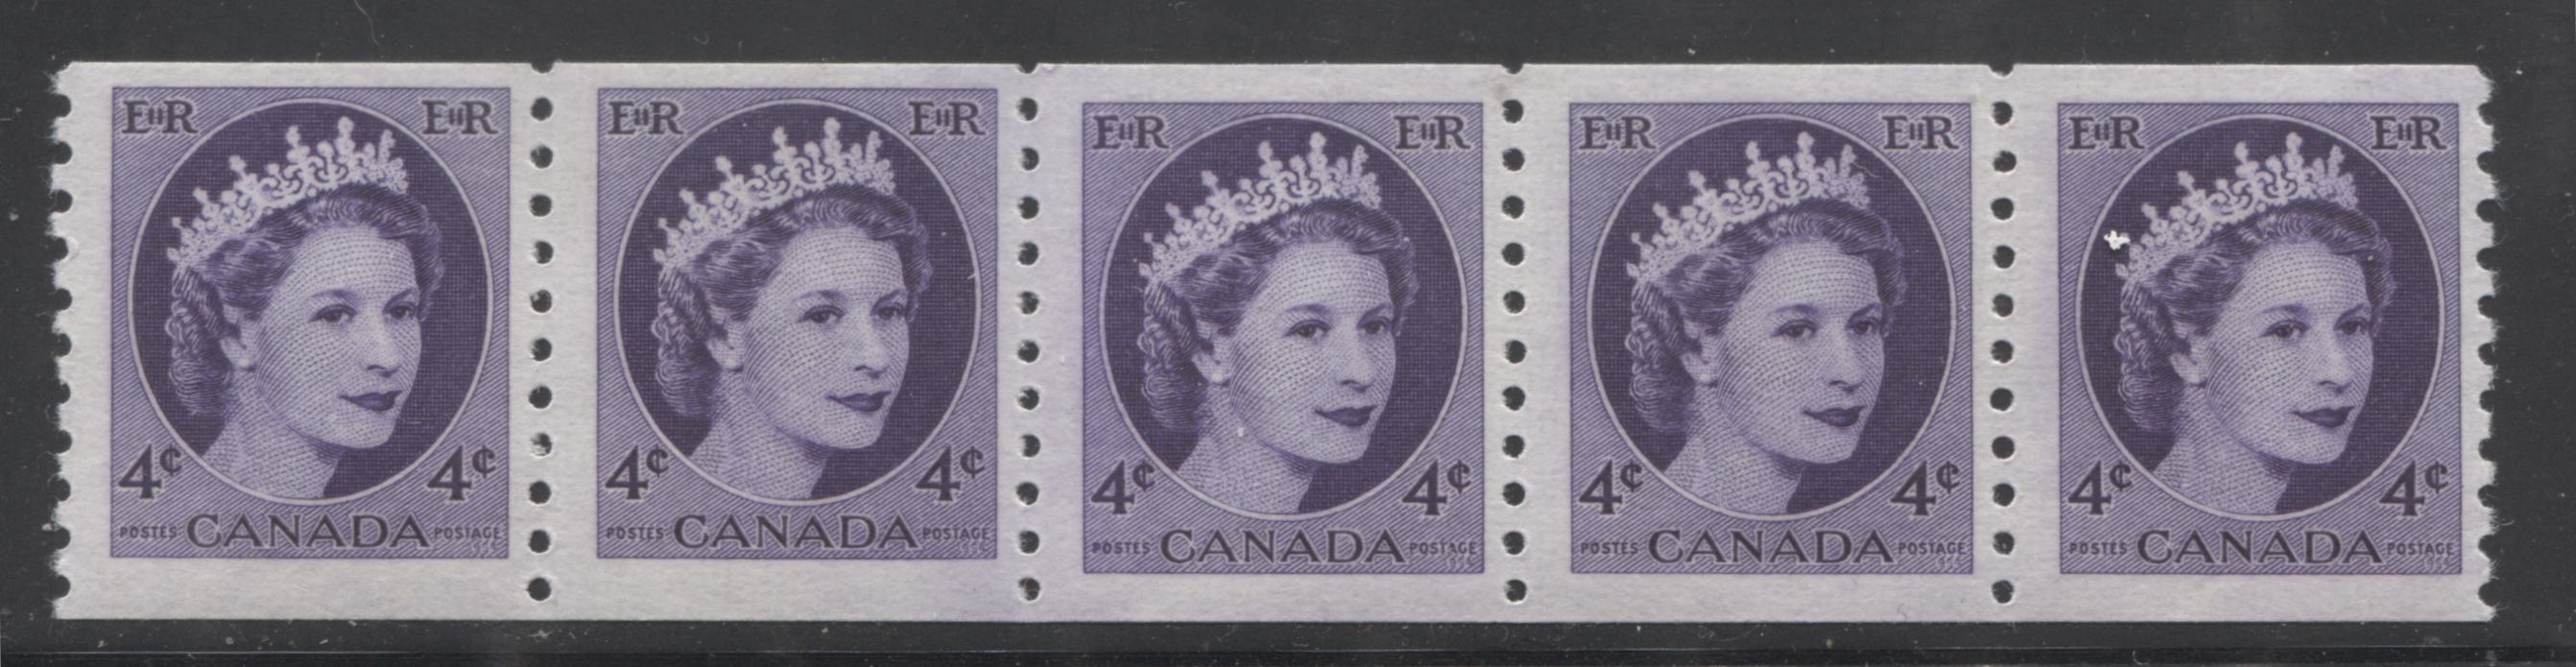 Canada #347i 4c Deep Violet Queen Elizabeth II, 1954-1962 Wilding Issue, A Fine NH Coil Jump Strip on Dull Fluorescent Grayish White Vertical Ribbed Paper